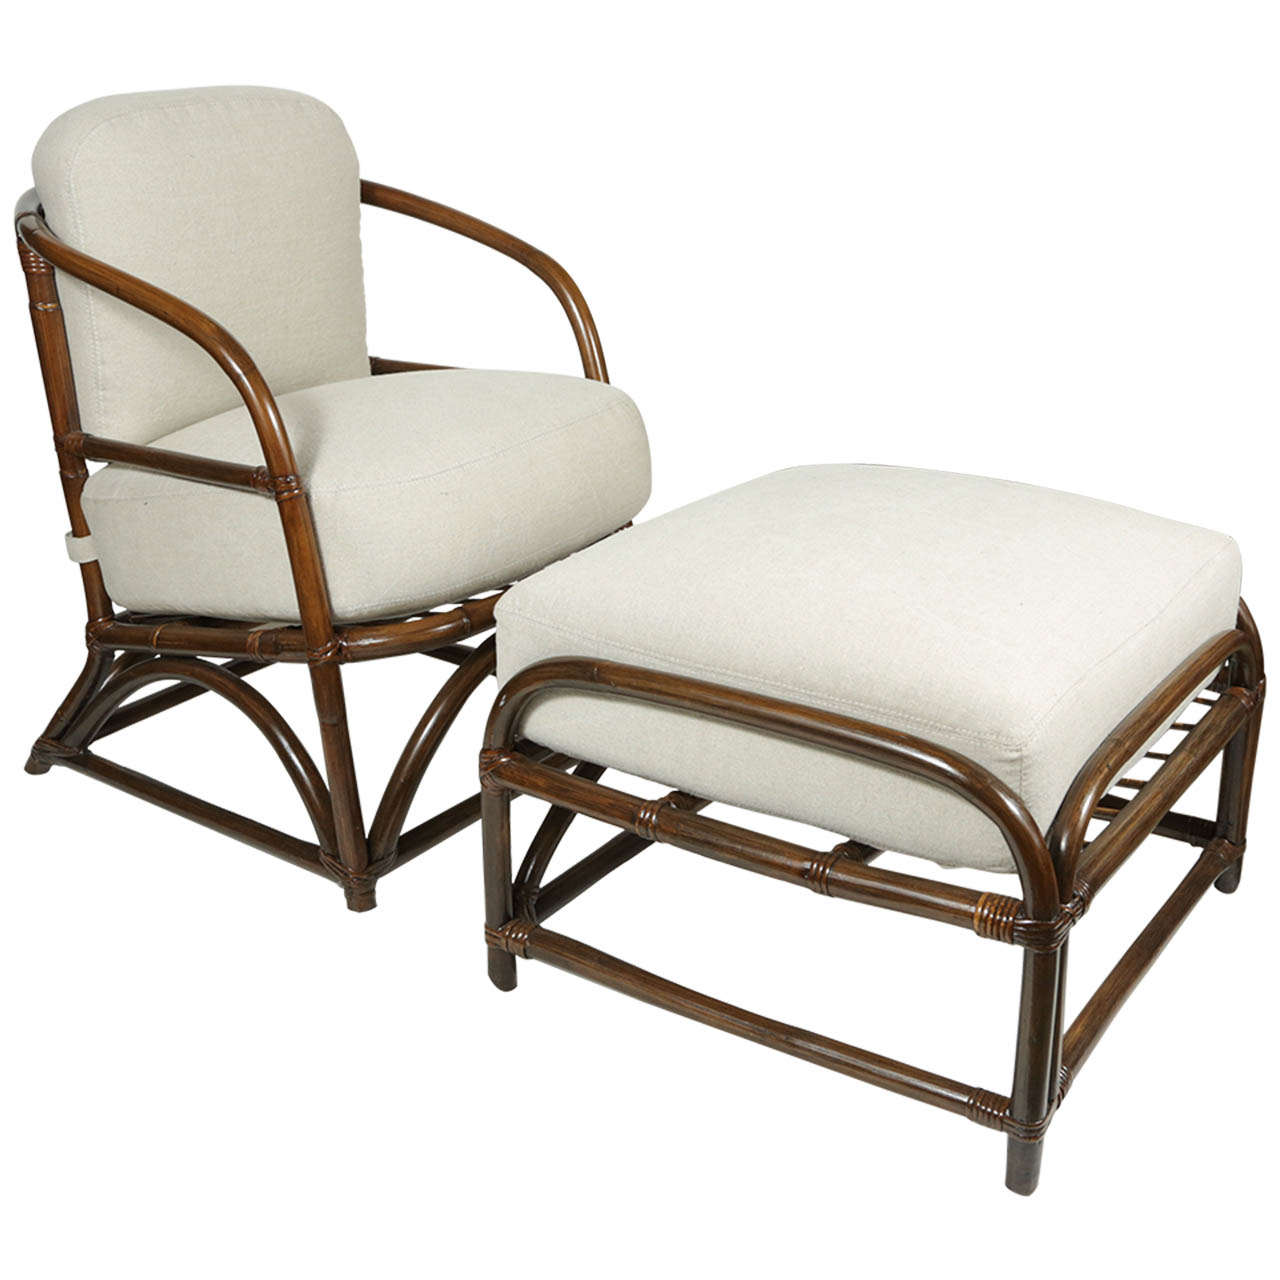 rattan club chair with ottoman at 1stdibs. Black Bedroom Furniture Sets. Home Design Ideas